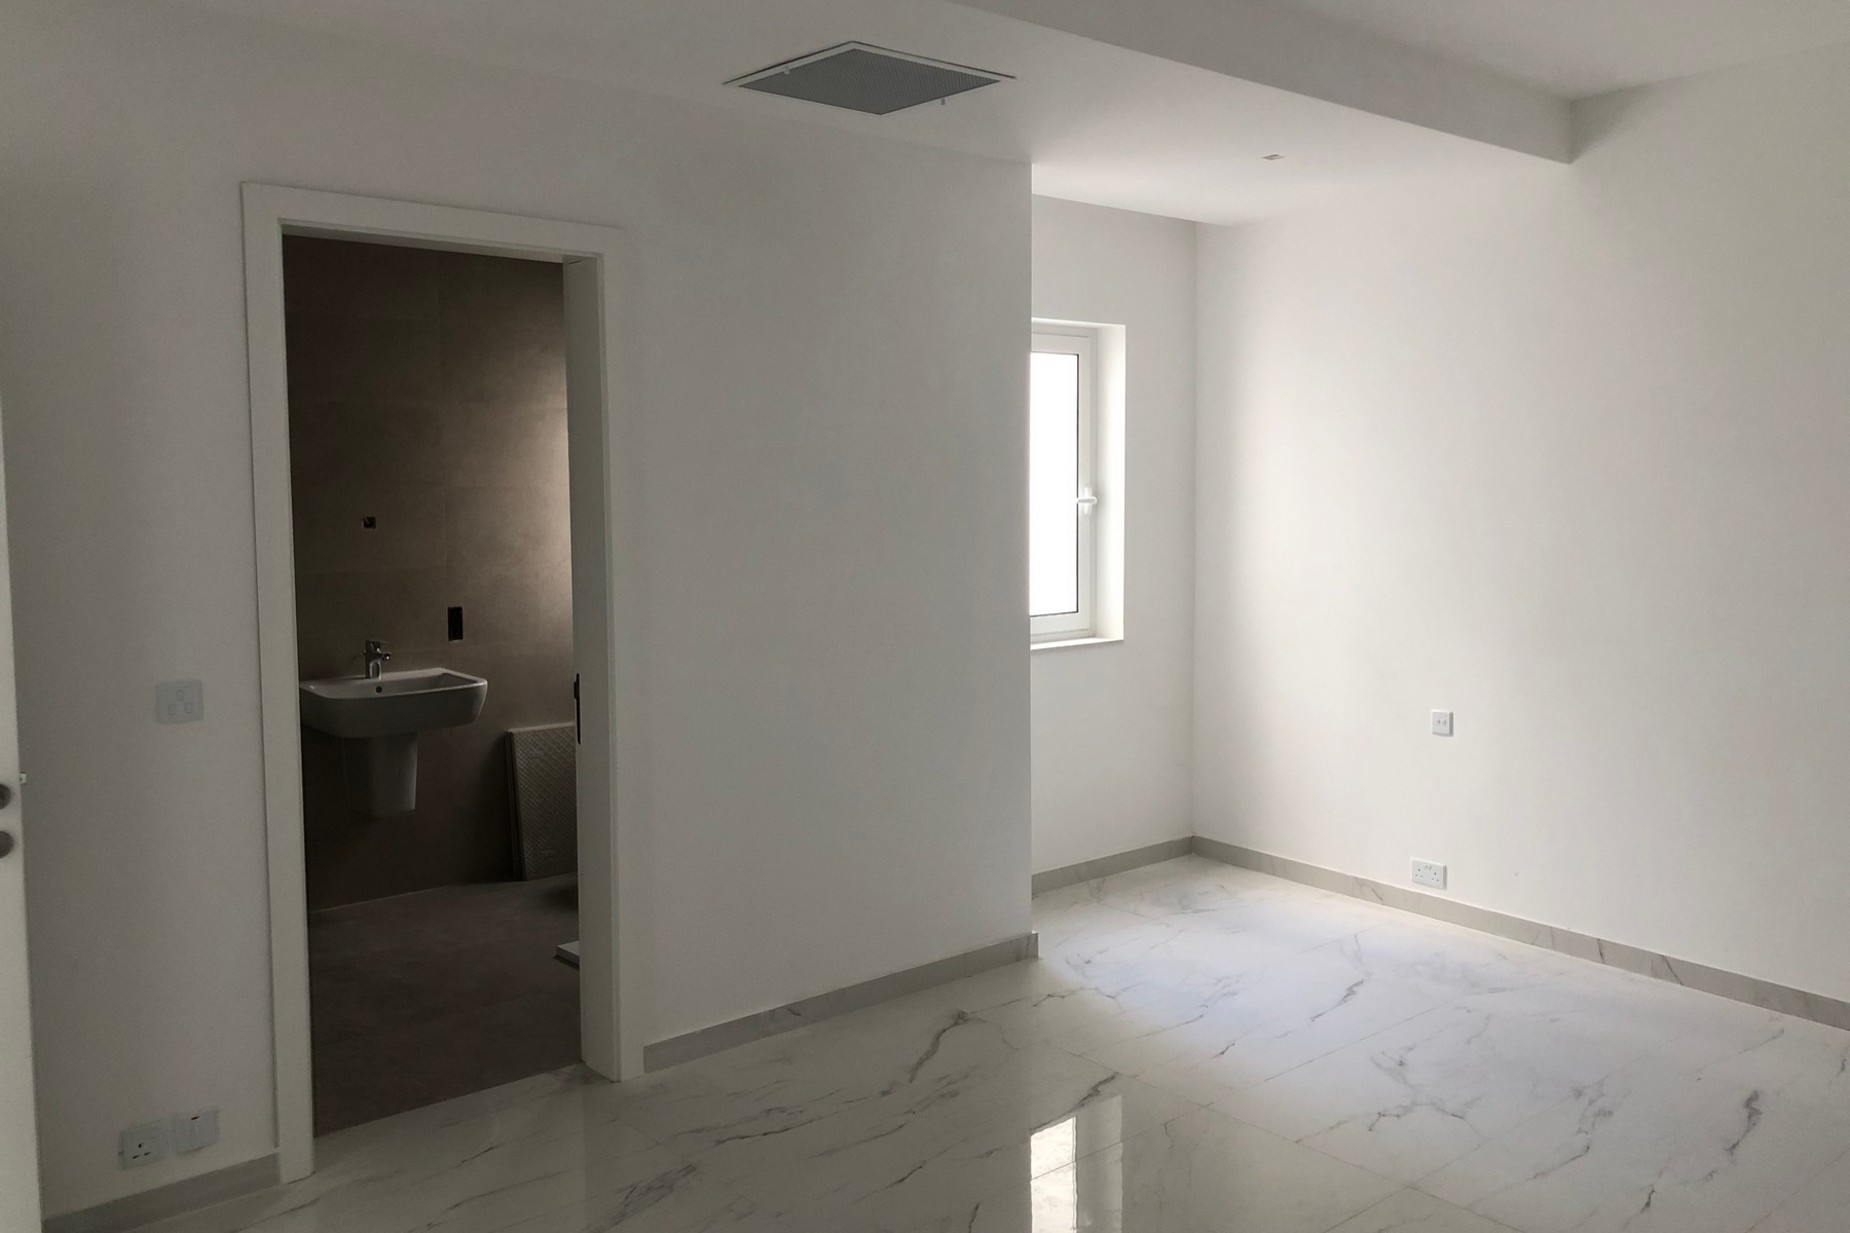 3 bed Penthouse For Sale in Madliena, Madliena - thumb 6